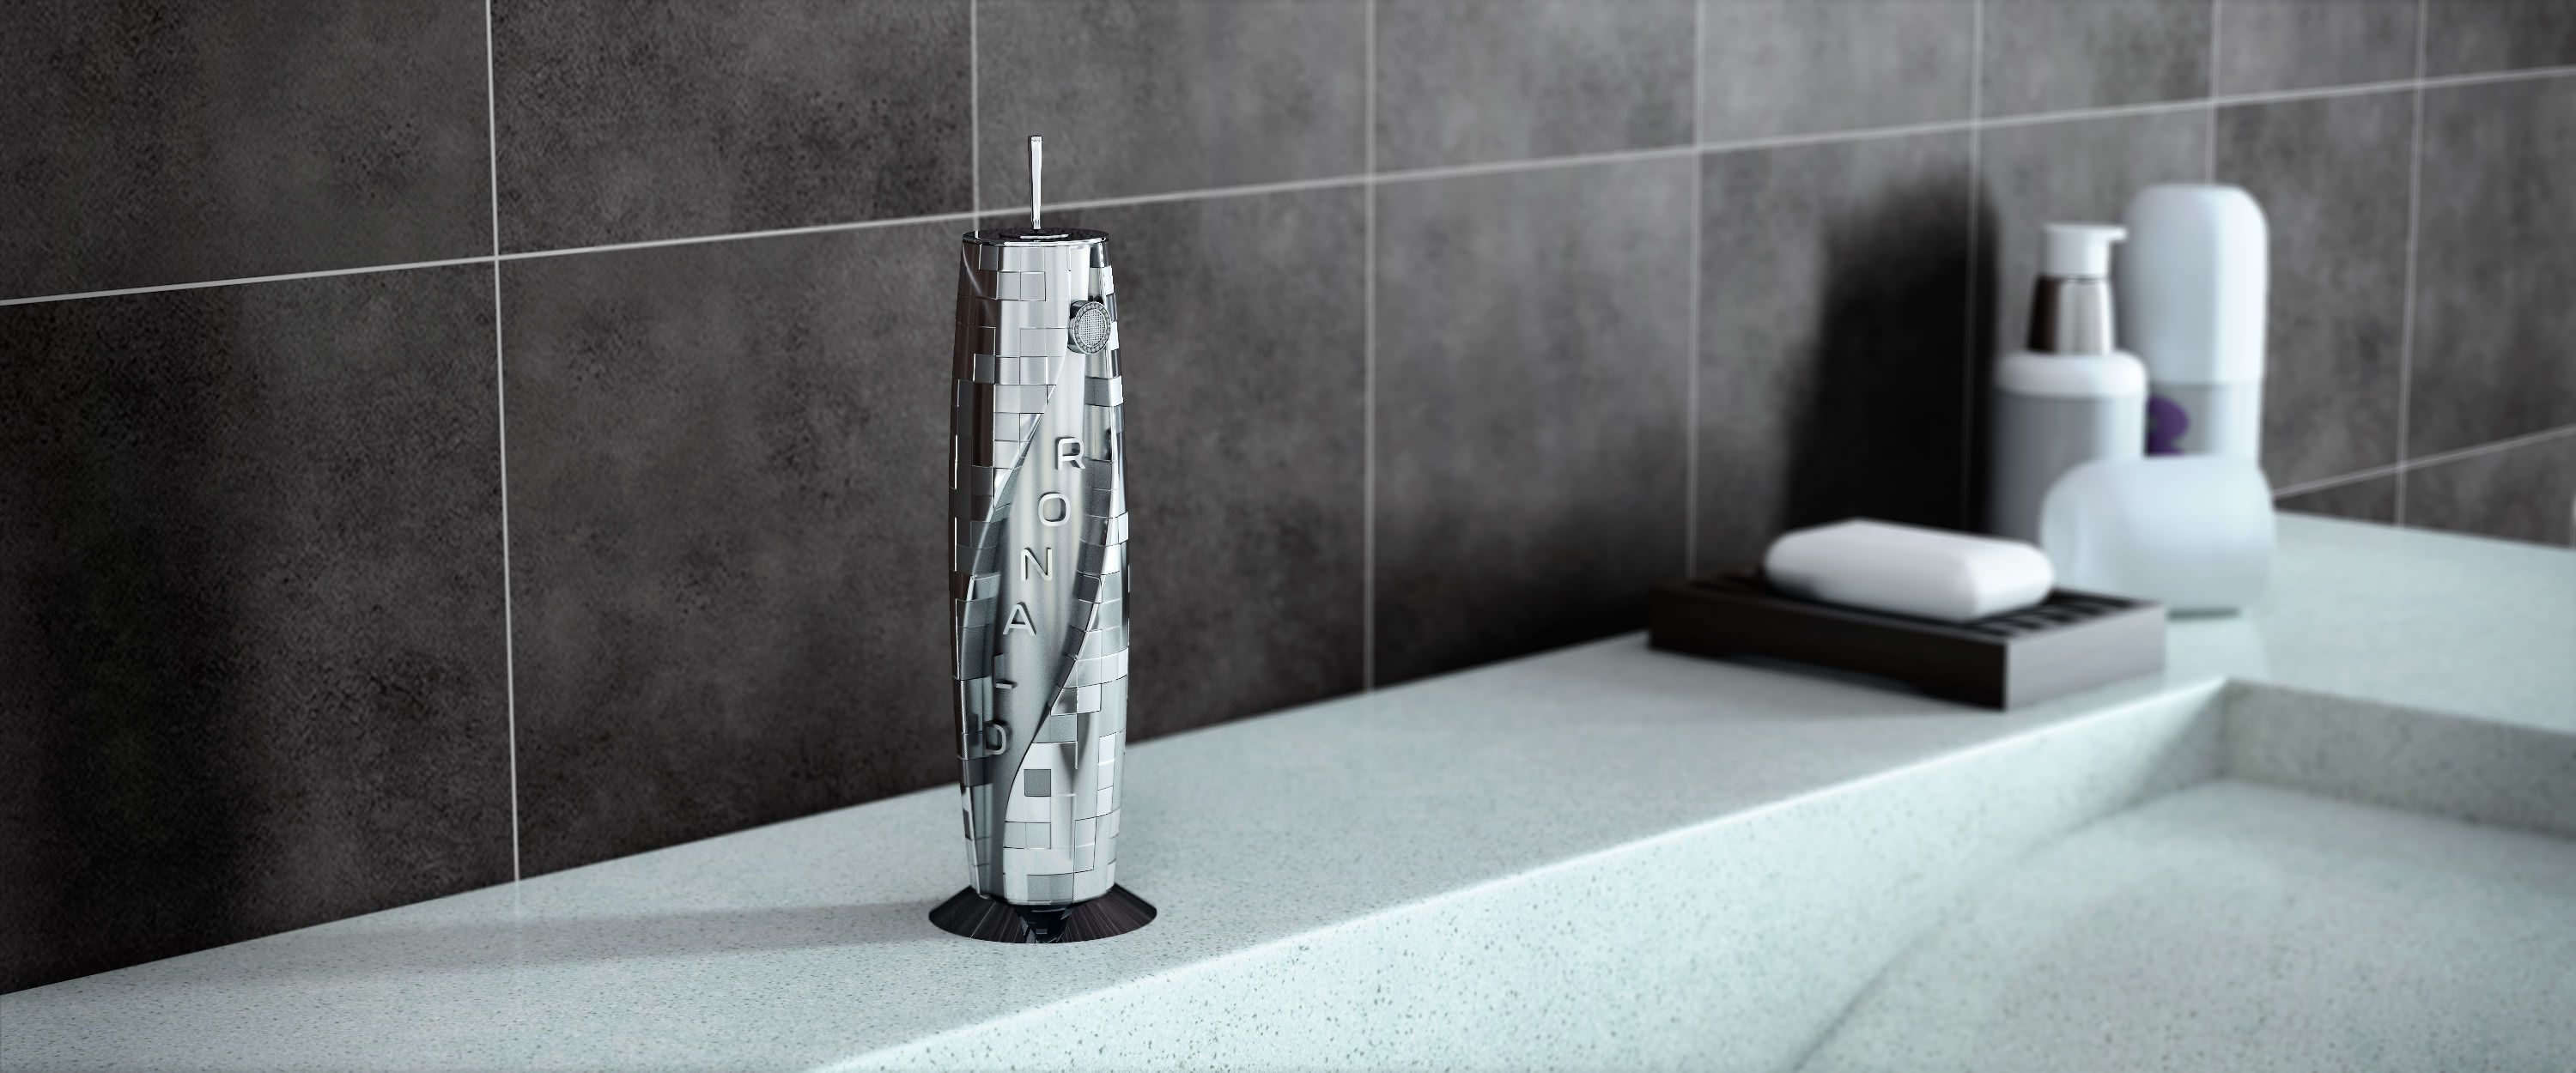 Tower Taps from QS Supplies. Designer Faucets for Modern and ...